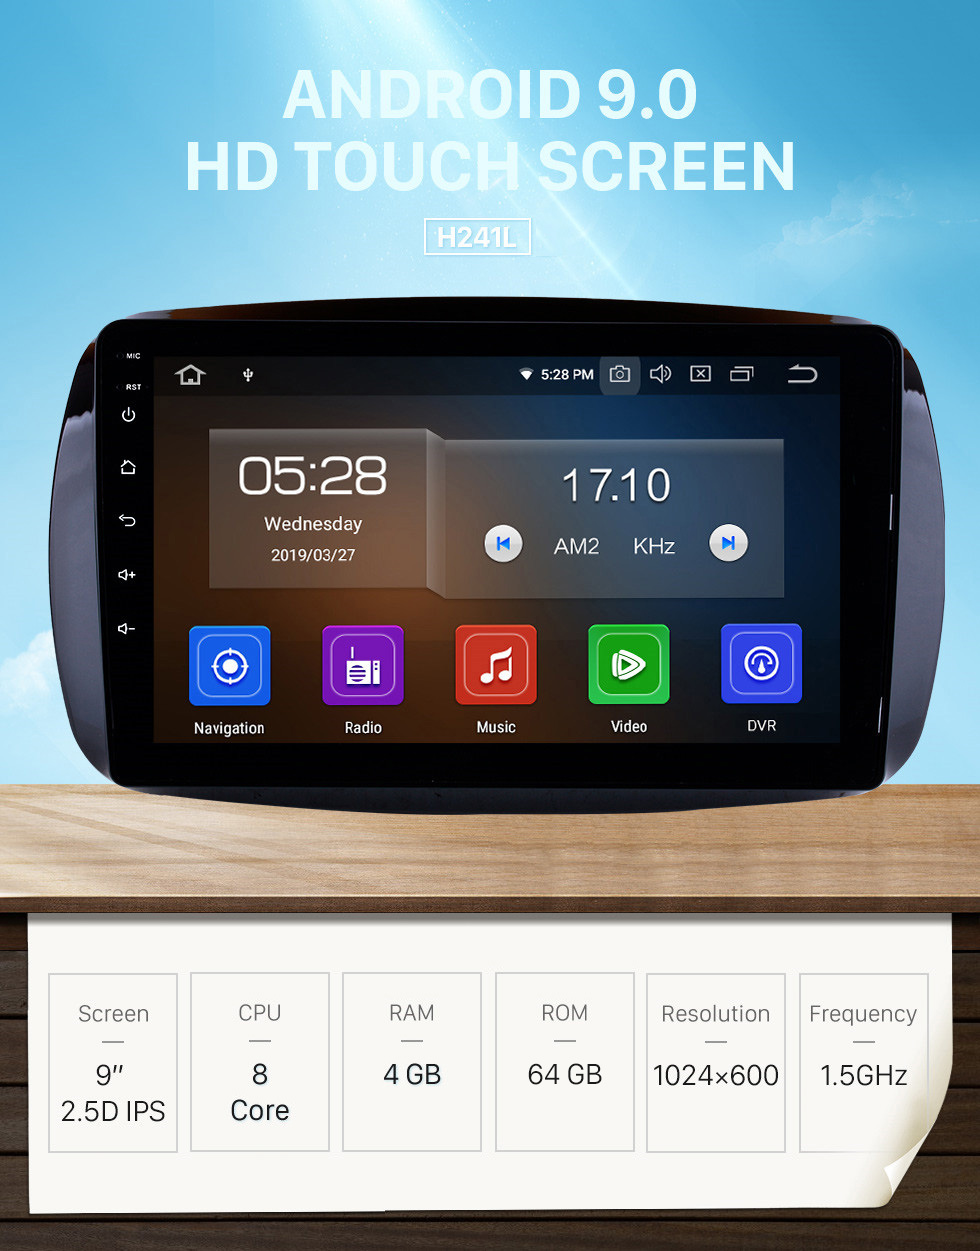 Seicane 9 Inch Android 9.0 HD 1024*600 Touchscreen Radio For 2015 2016 Mercedes Benz SMART Car Stereo GPS Navigation System Bluetooth Support Mirror Link OBD2 AUX 3G WiFi DVR 1080P Video Steering Wheel Control